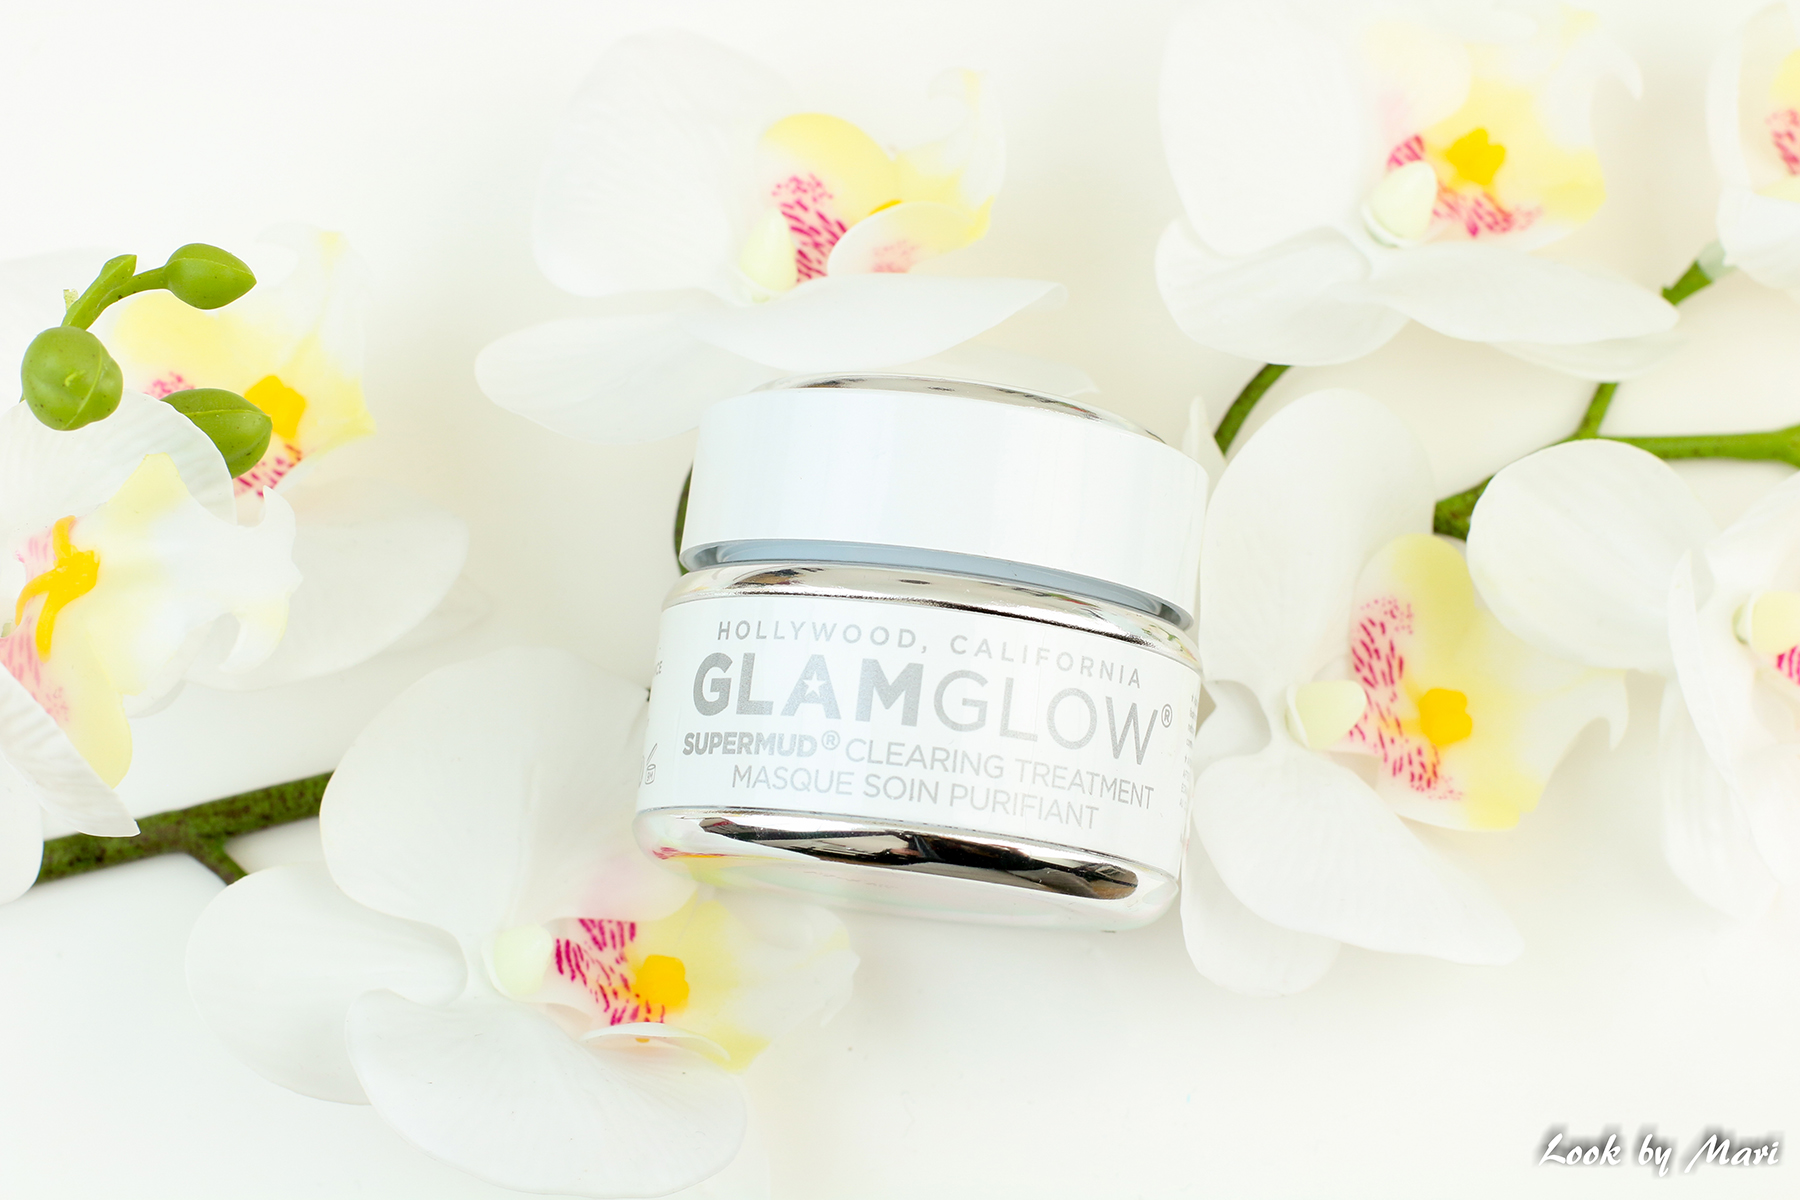 1 glamglow supermud review sephora mask for acne price worth it